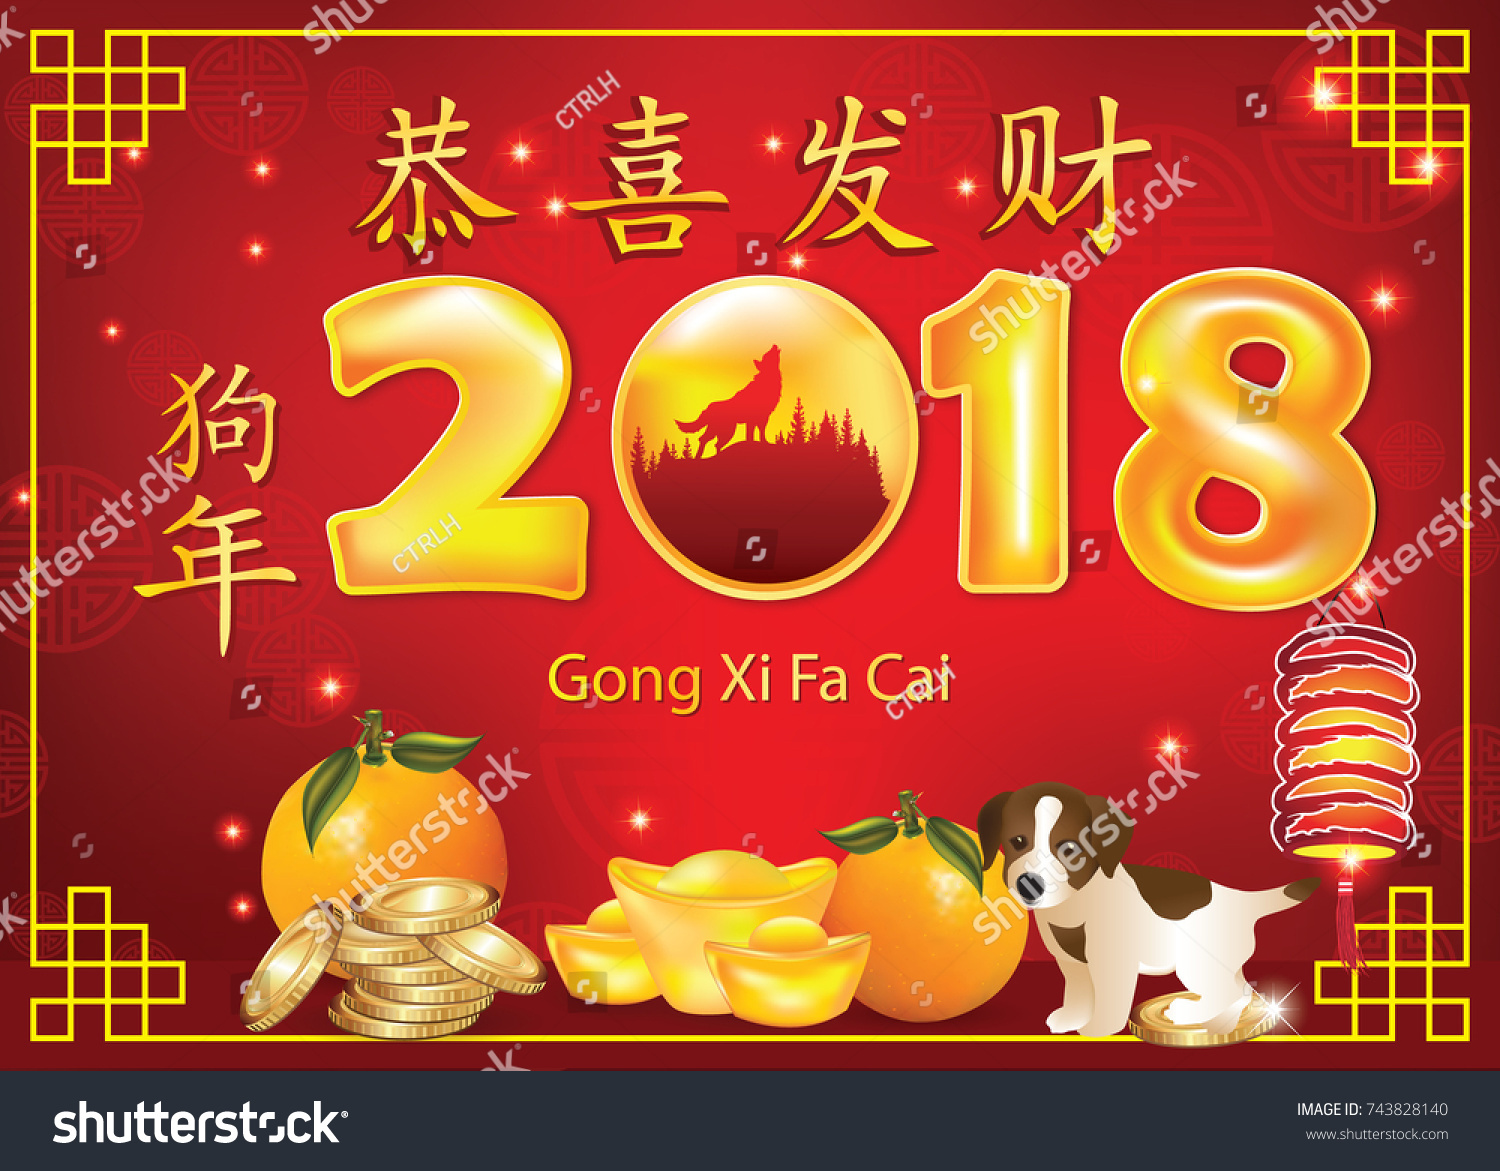 Happy new year dog 2018 red stock illustration 743828140 shutterstock happy new year of the dog 2018 red chinese greeting card for the new year m4hsunfo